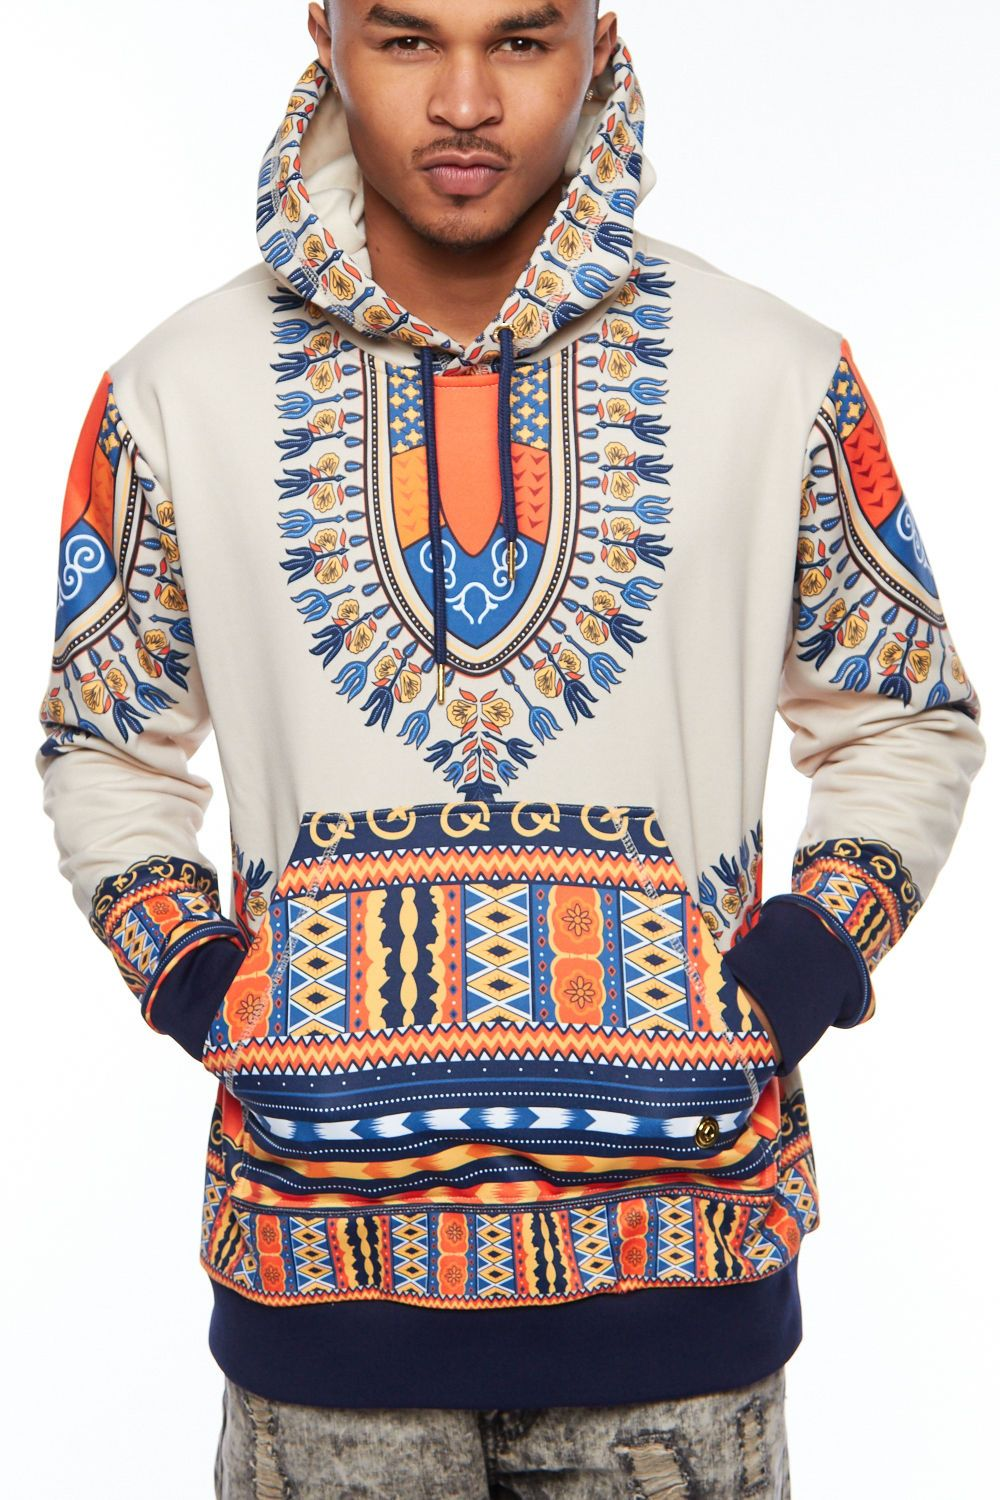 89005906b7f Africa 155241  Mens Hipster African Swag Dashiki Print Fashion Traditional  Hoodie Jacket 030414 -  BUY IT NOW ONLY   84 on eBay!